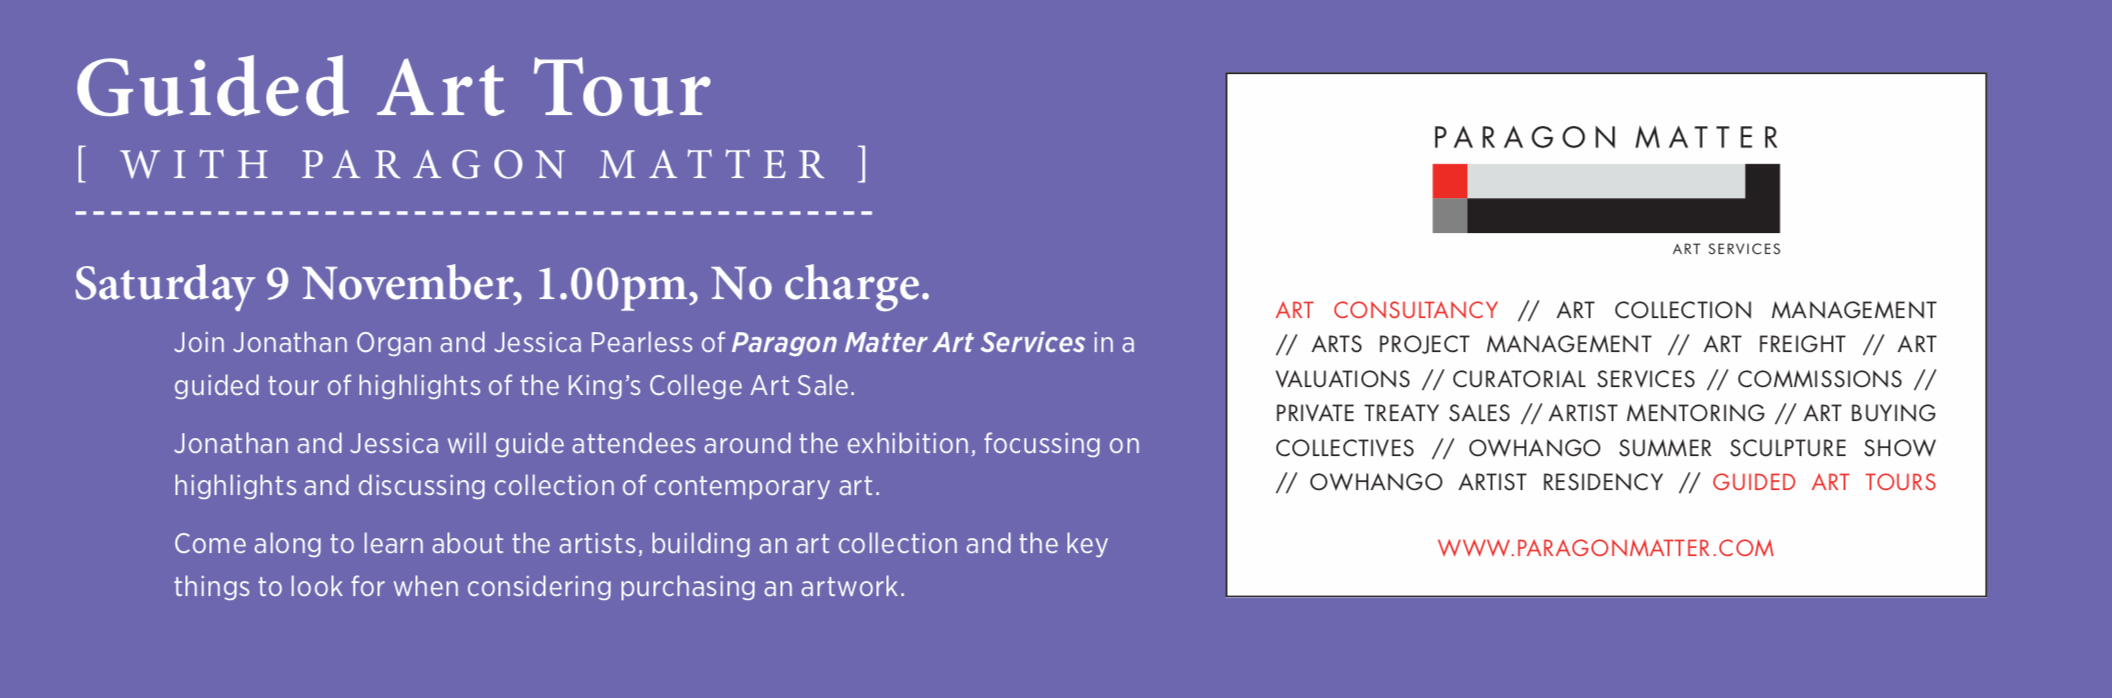 Paragon Matters Art Catalogue